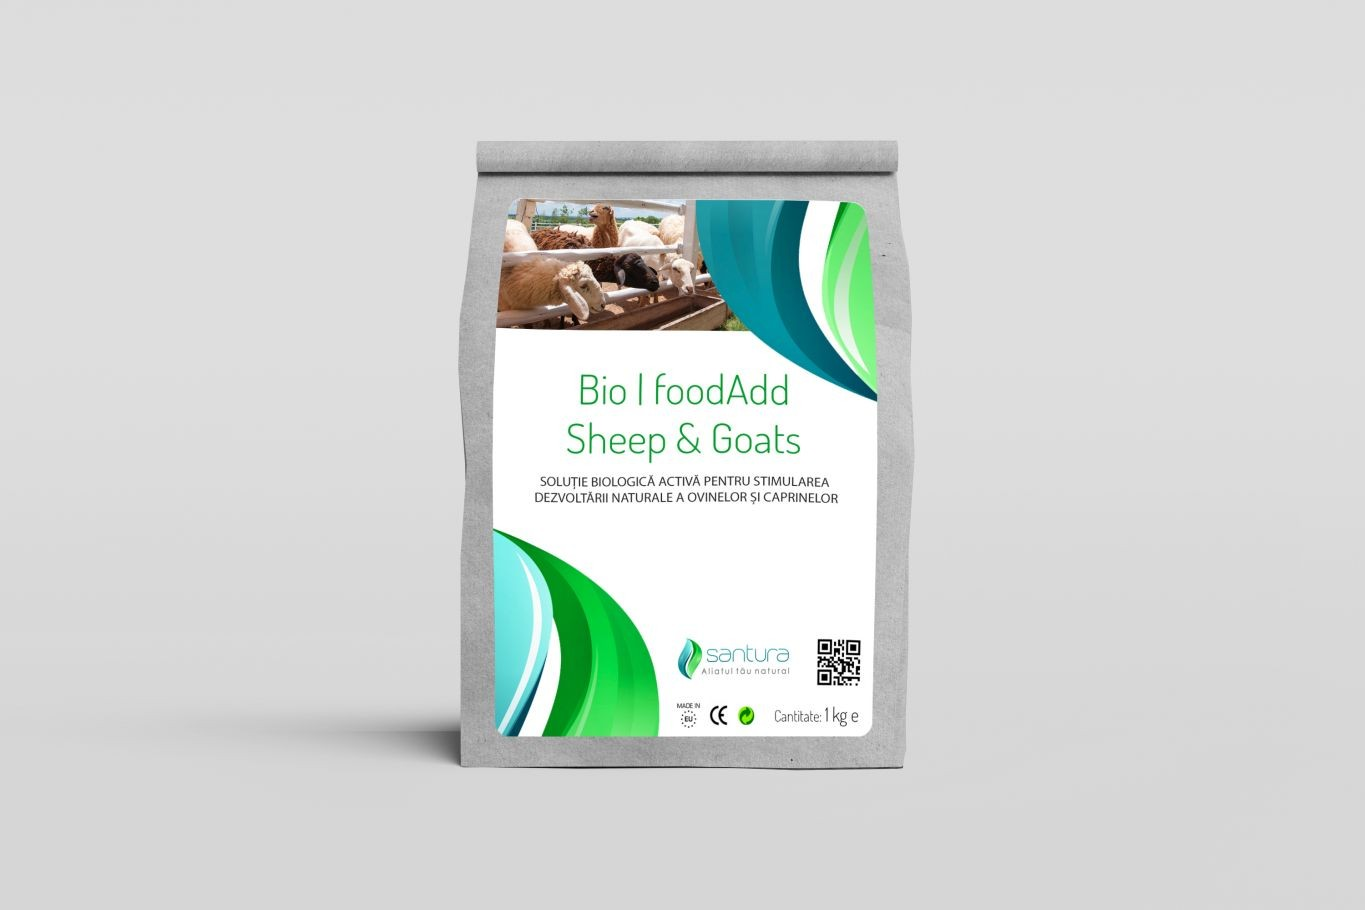 Bio|foodAdd Sheep